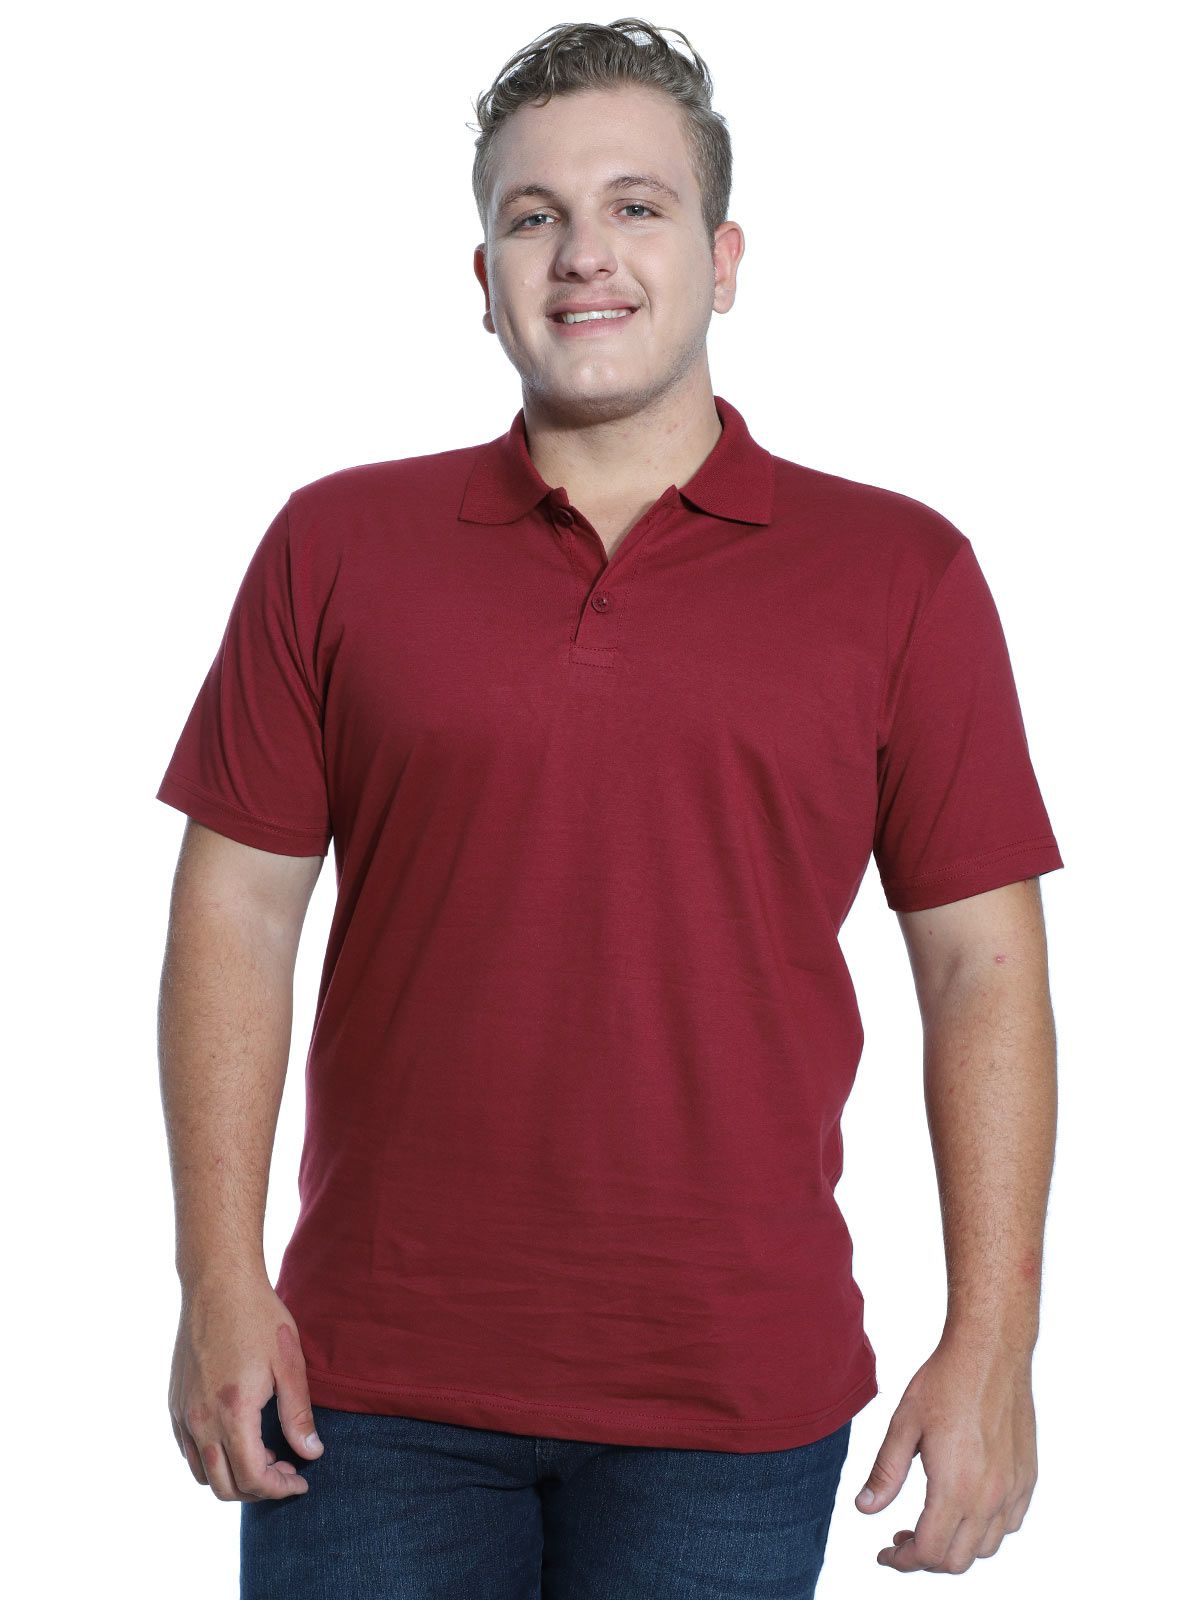 Camisa Polo Básica Lisa Anistia Bordo